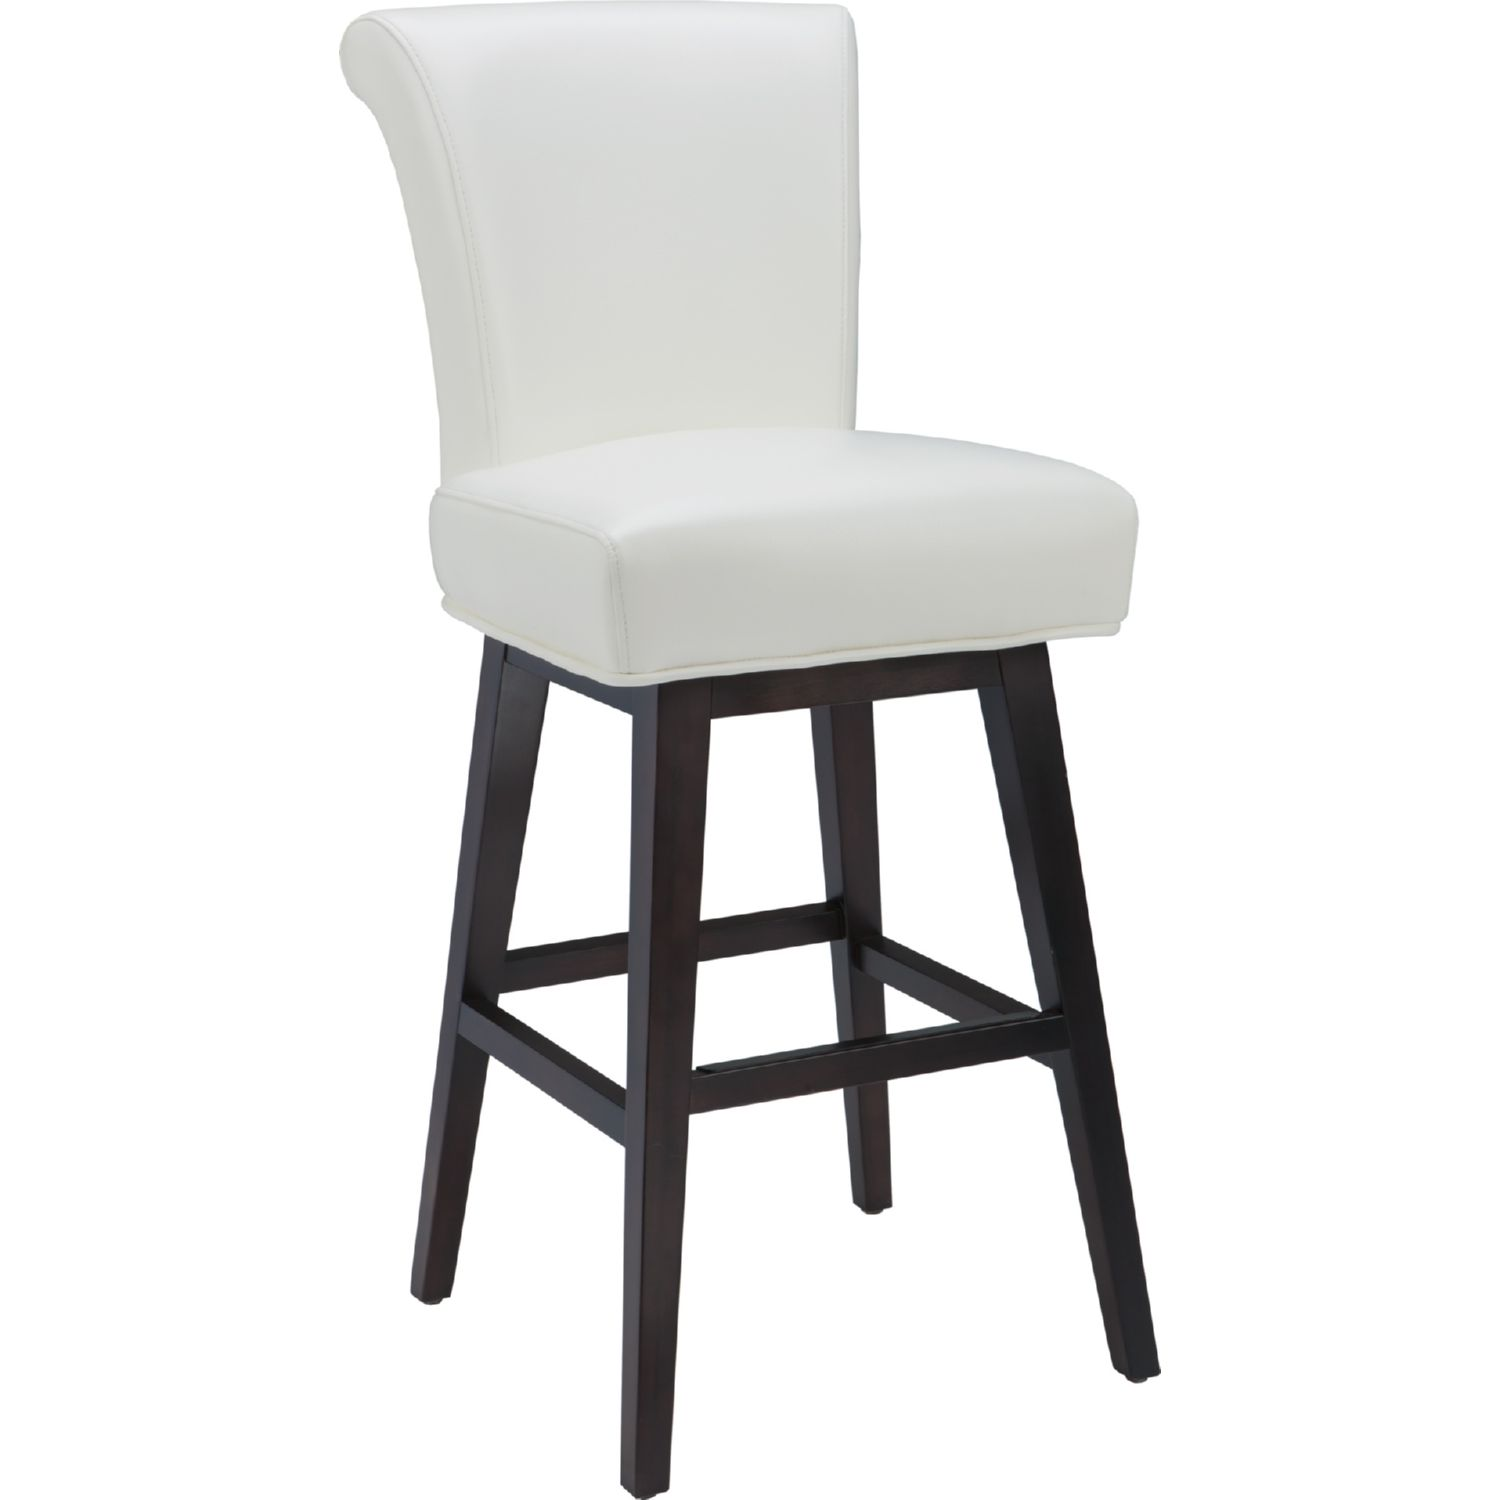 Fabulous Sunpan Furniture Chairs Bar Stools Counter Stools Ottomans Machost Co Dining Chair Design Ideas Machostcouk